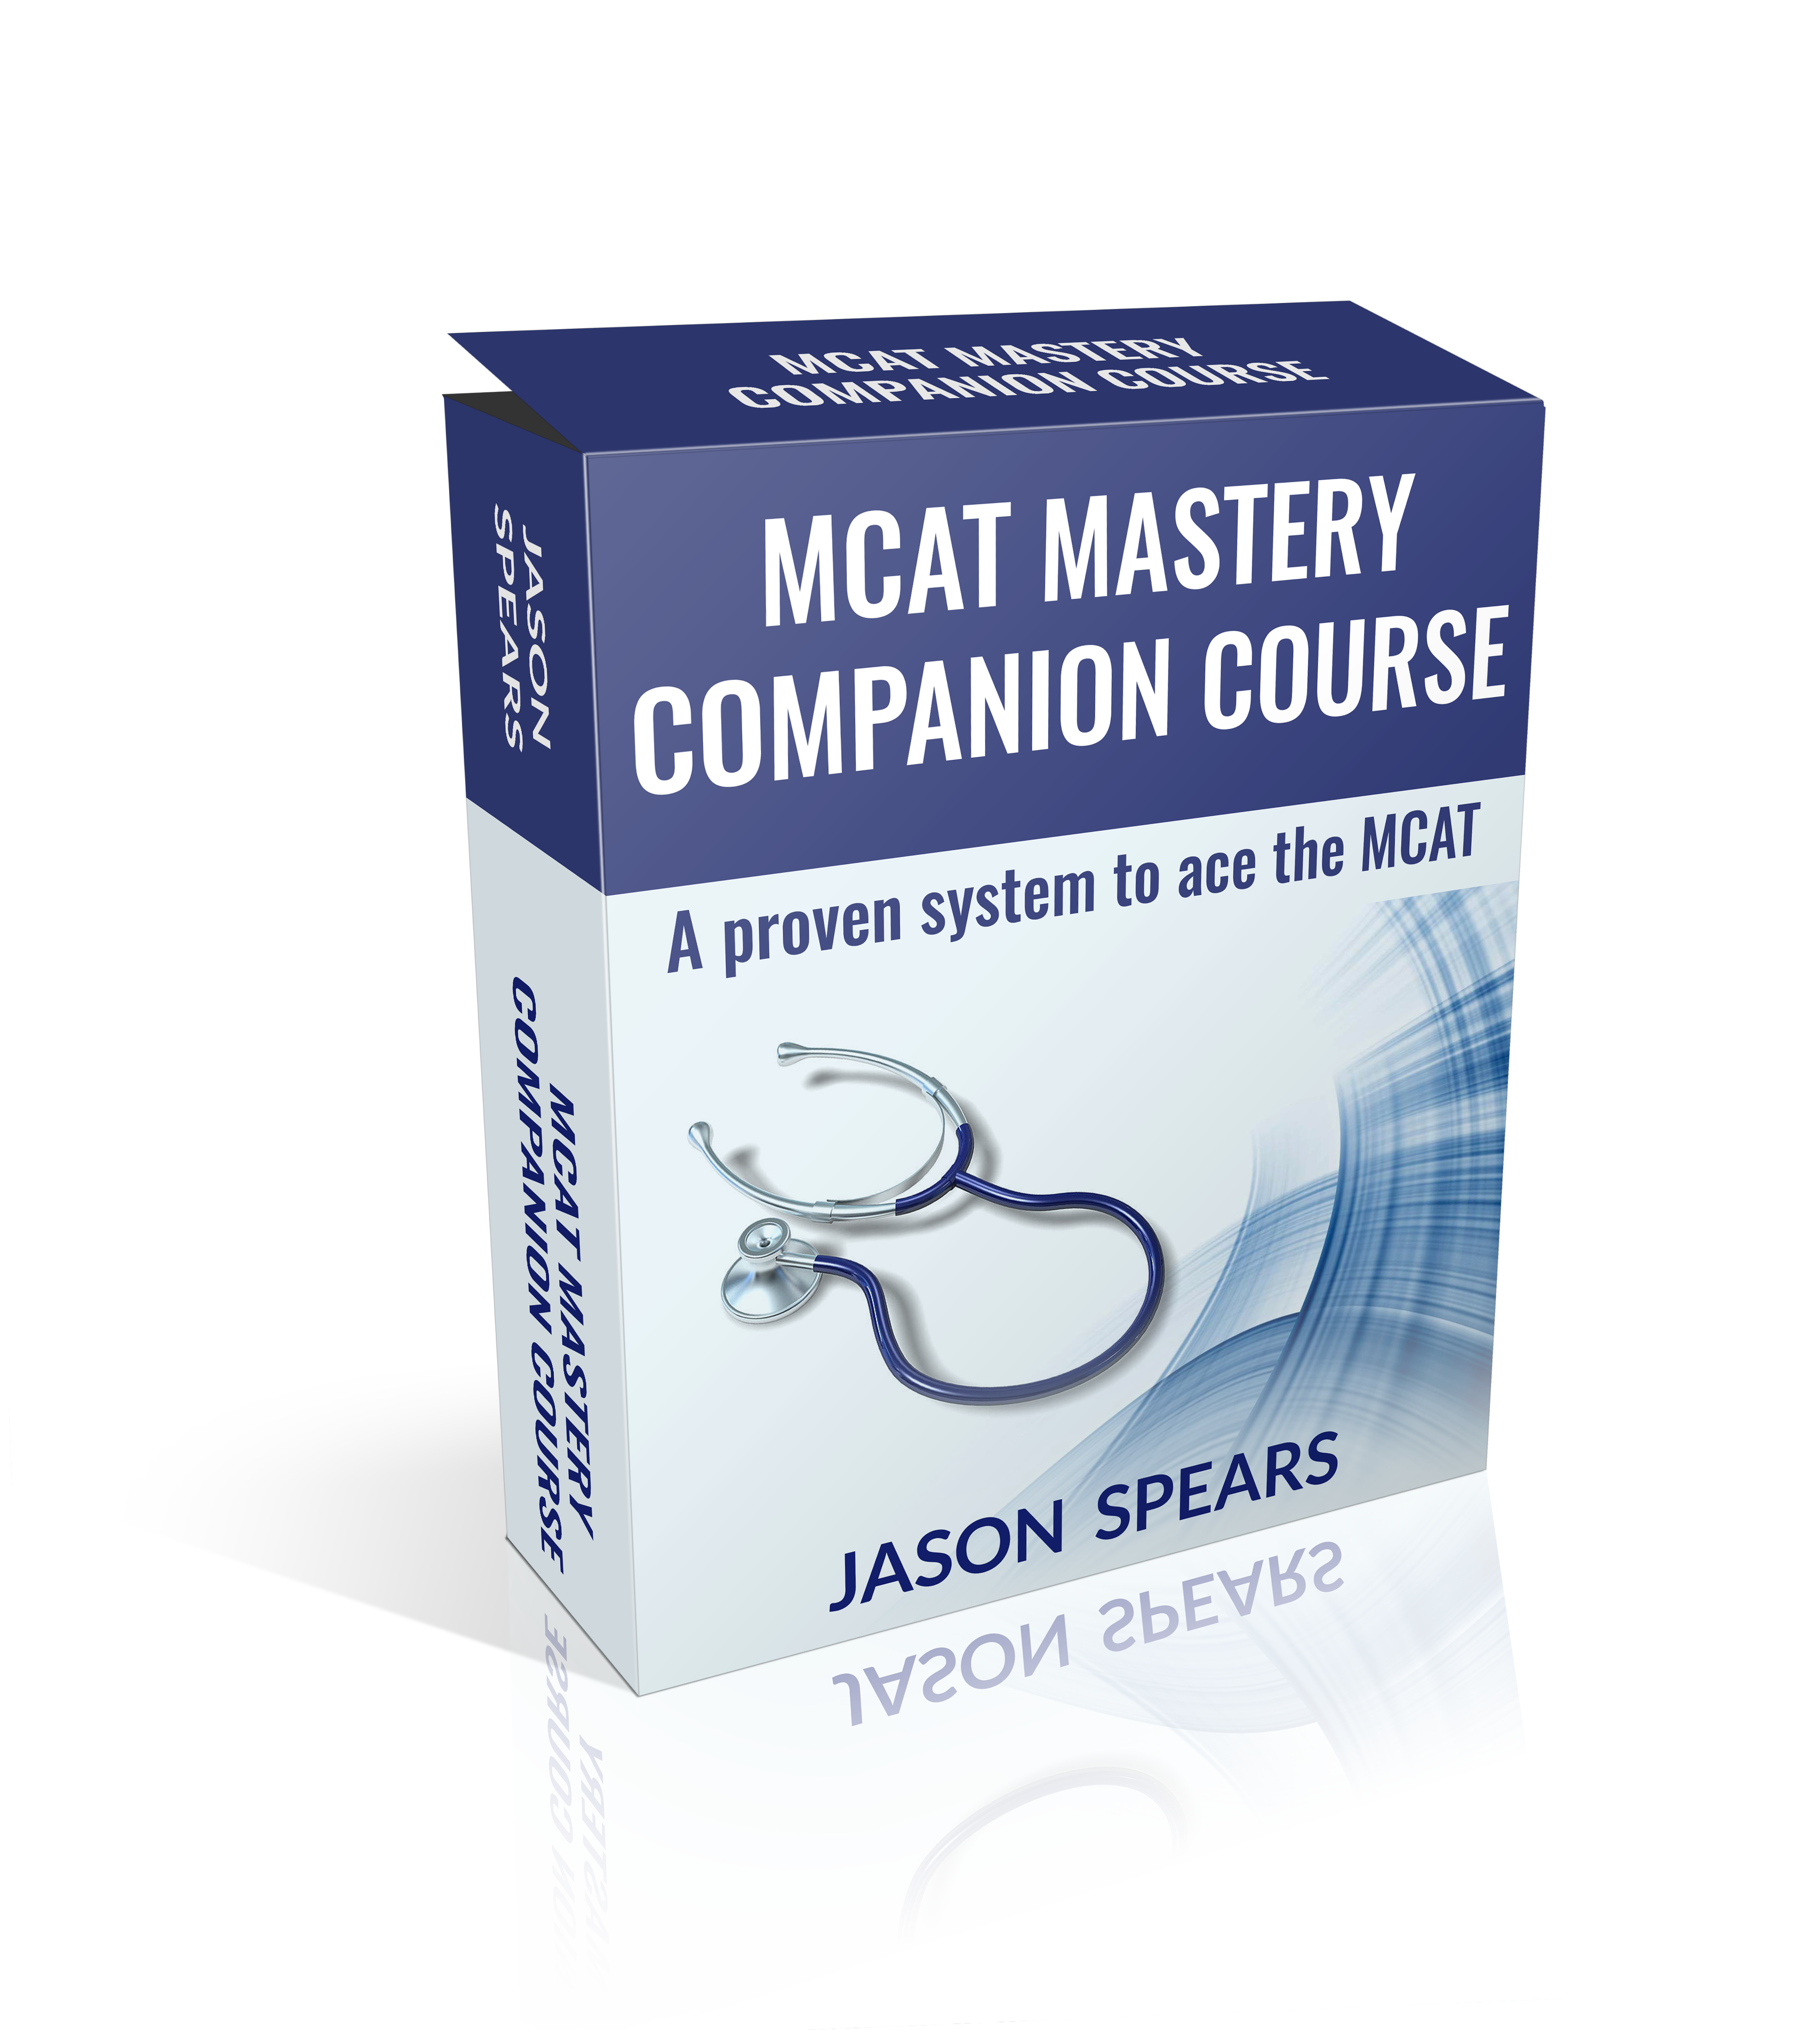 MCAT Mastery Companion Course